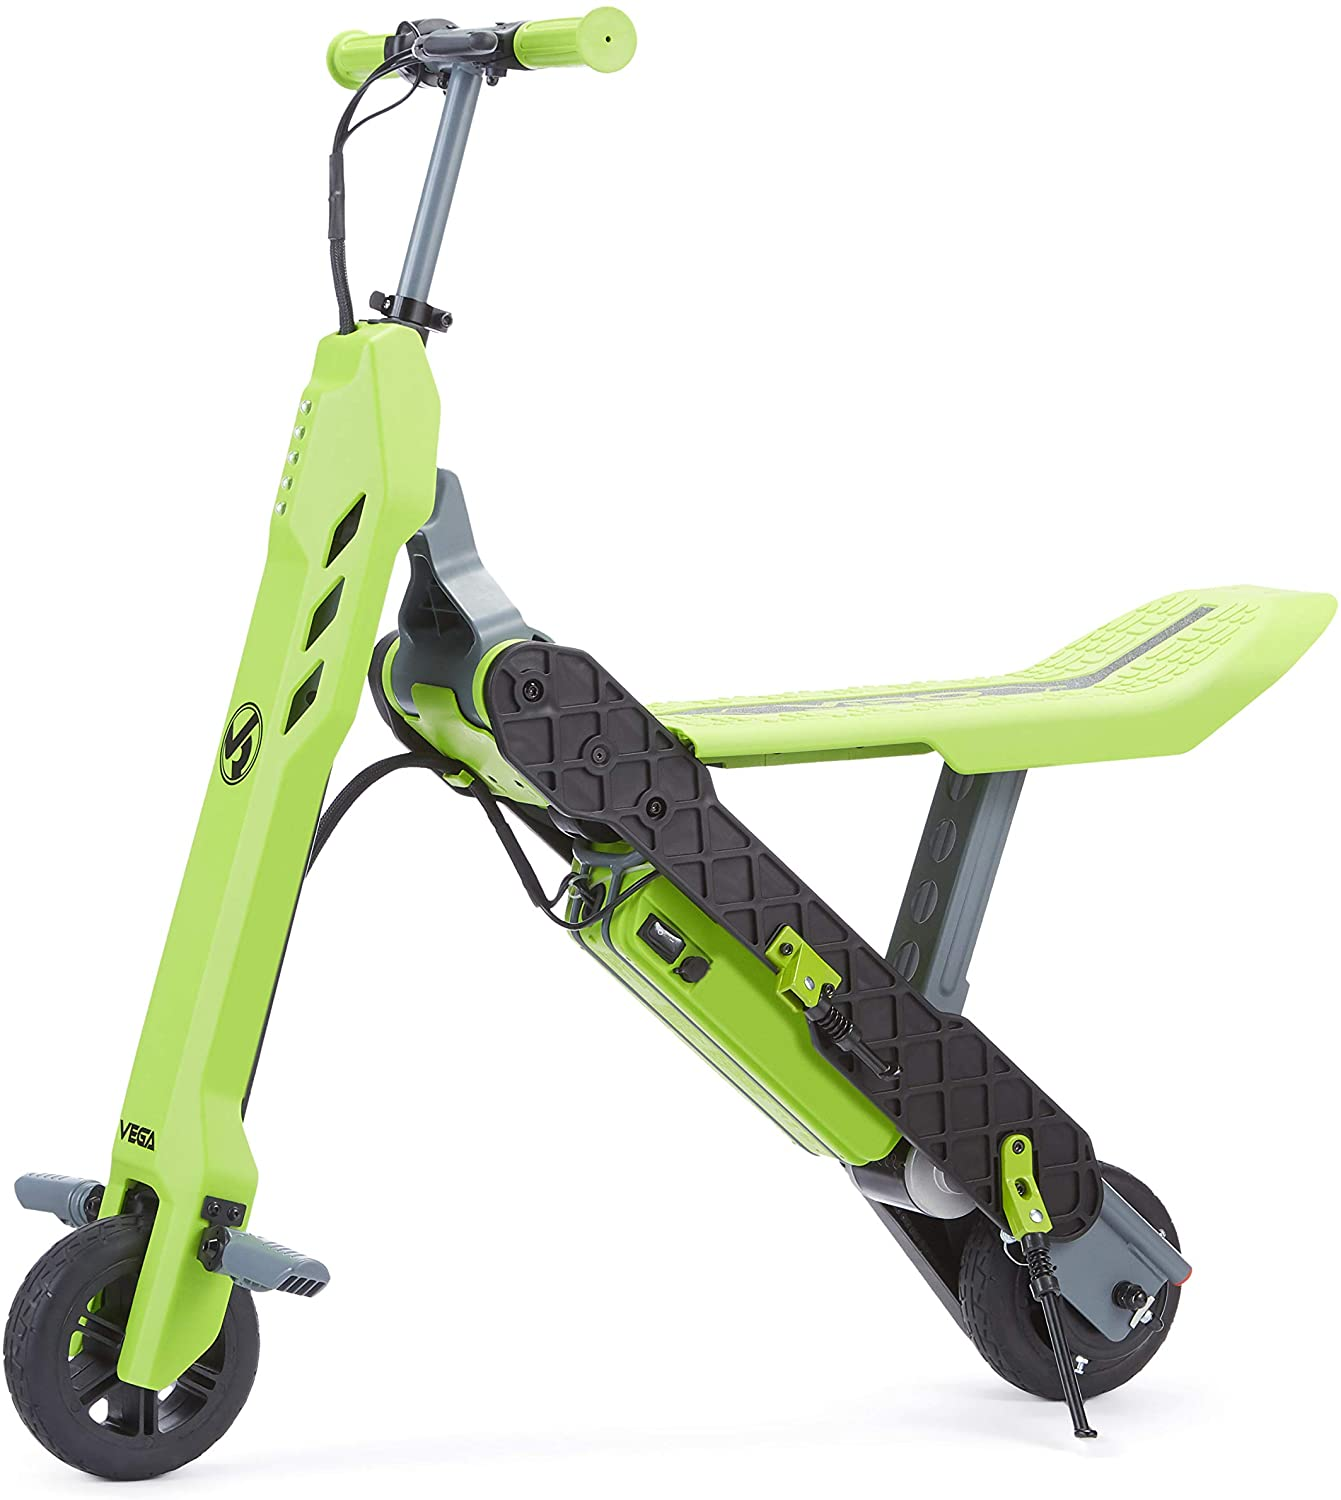 Review of VIRO Rides Vega 2-in-1 Transforming Electric Scooter & Mini Bike, Green